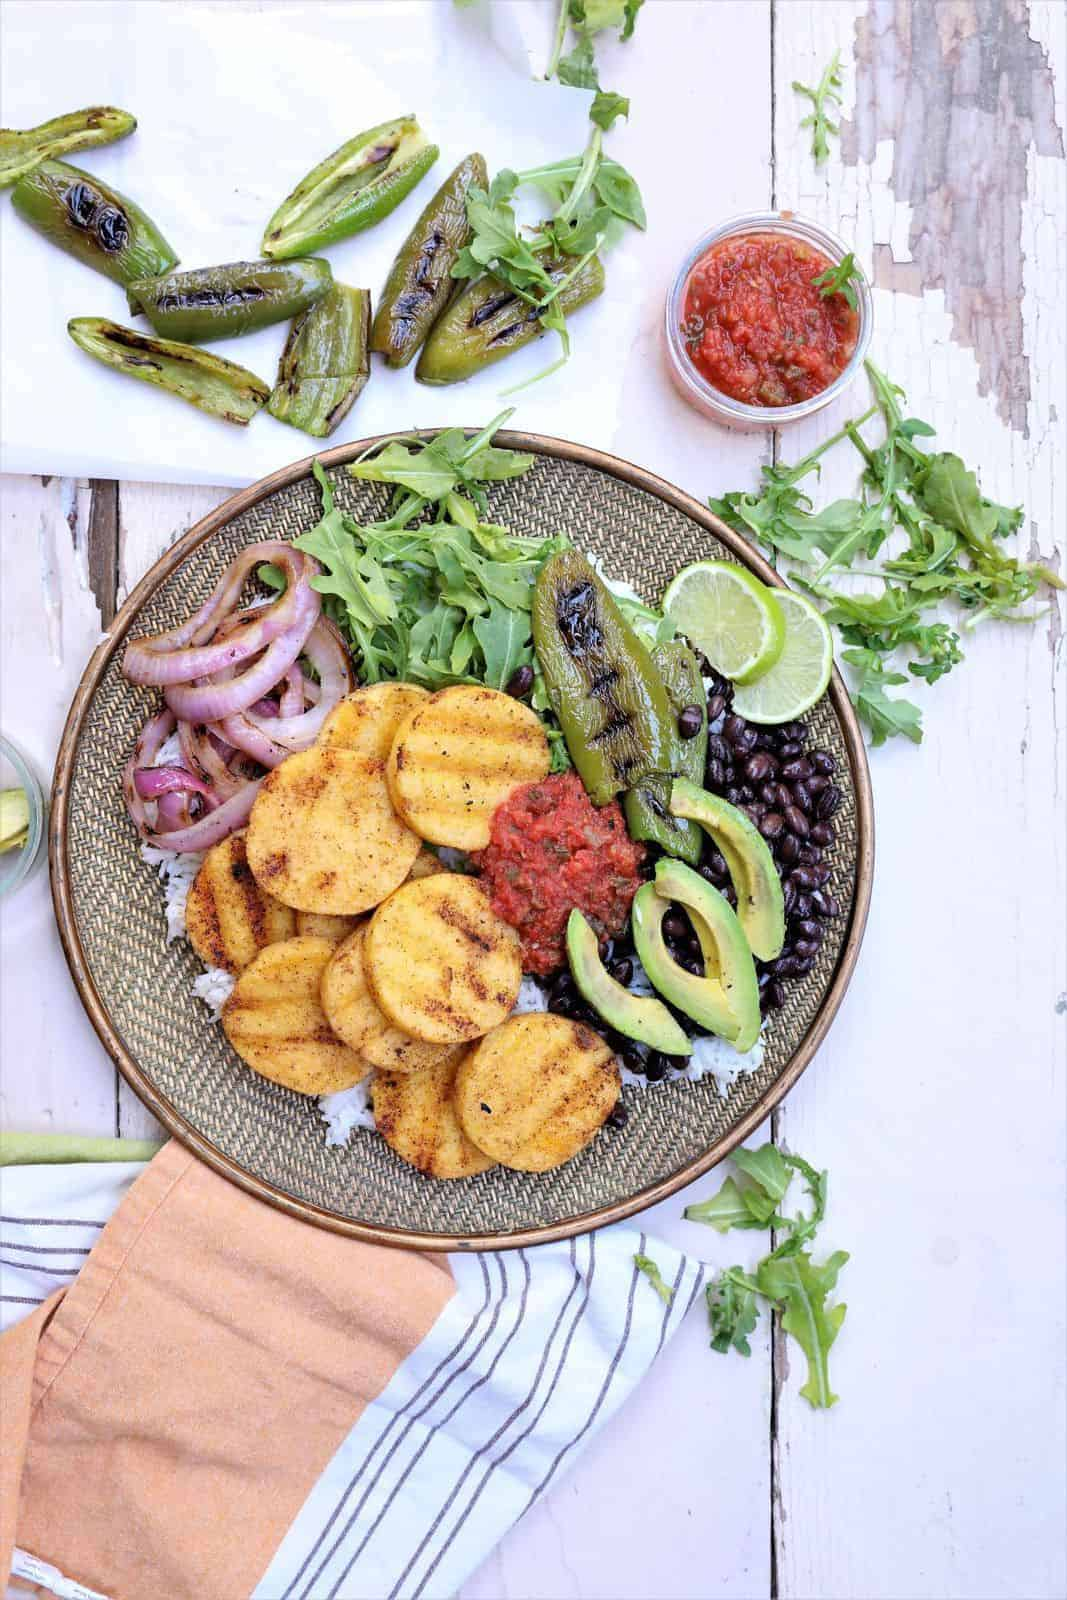 Grilled Polenta Bowl with jalapenos, avocados and napkin